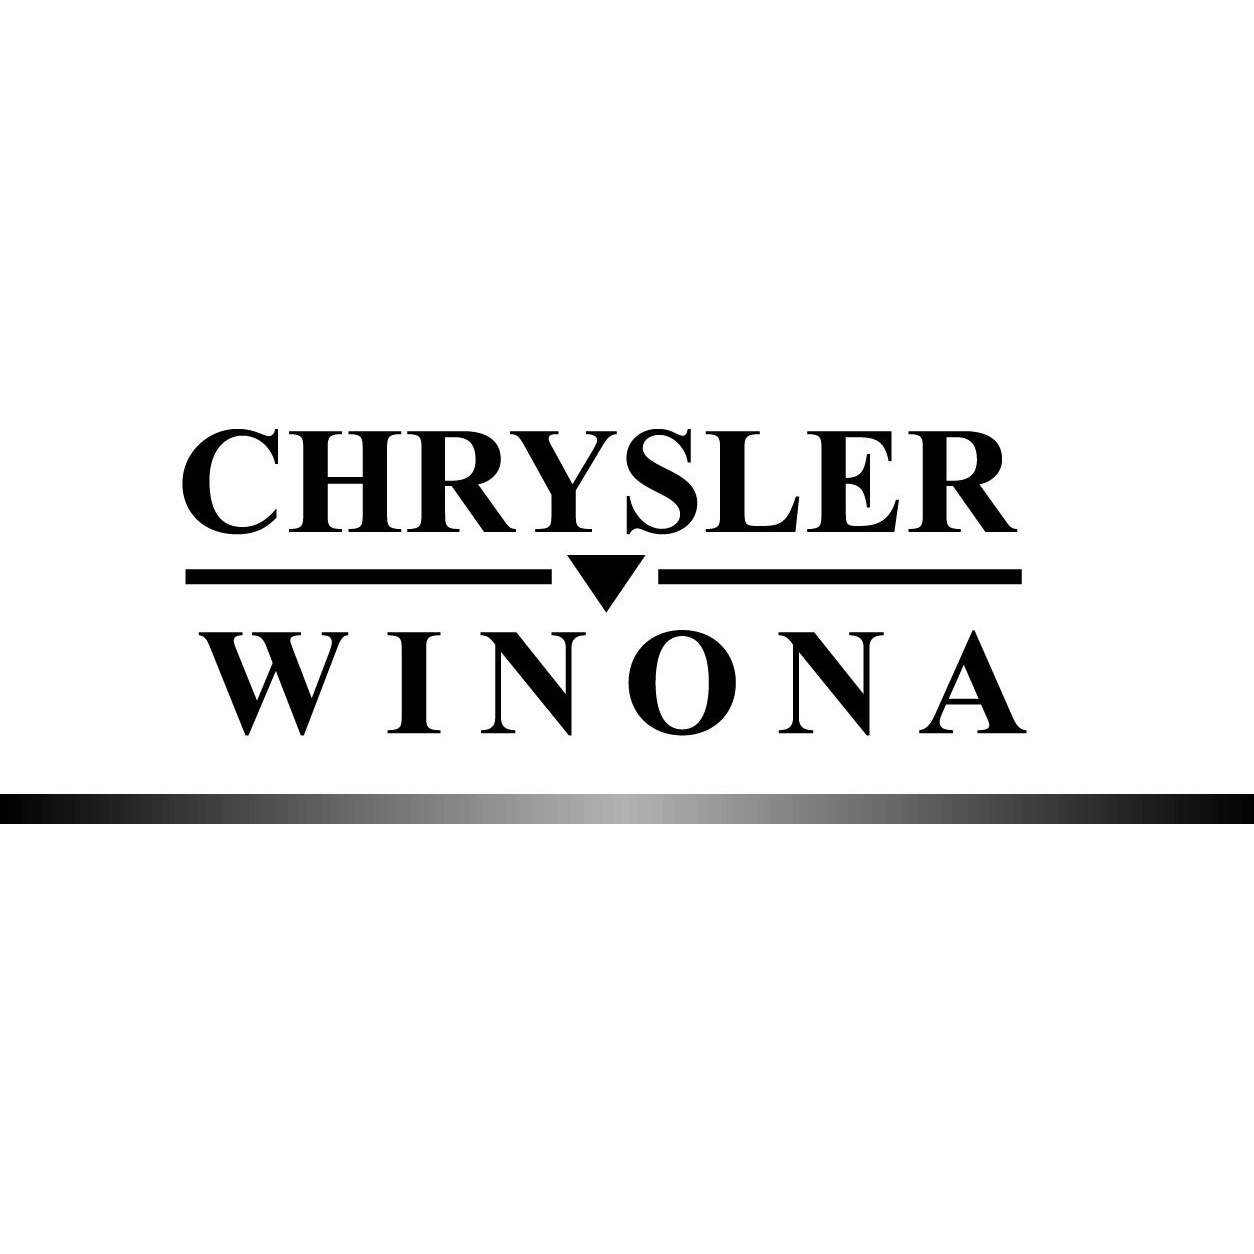 Chrysler Winona